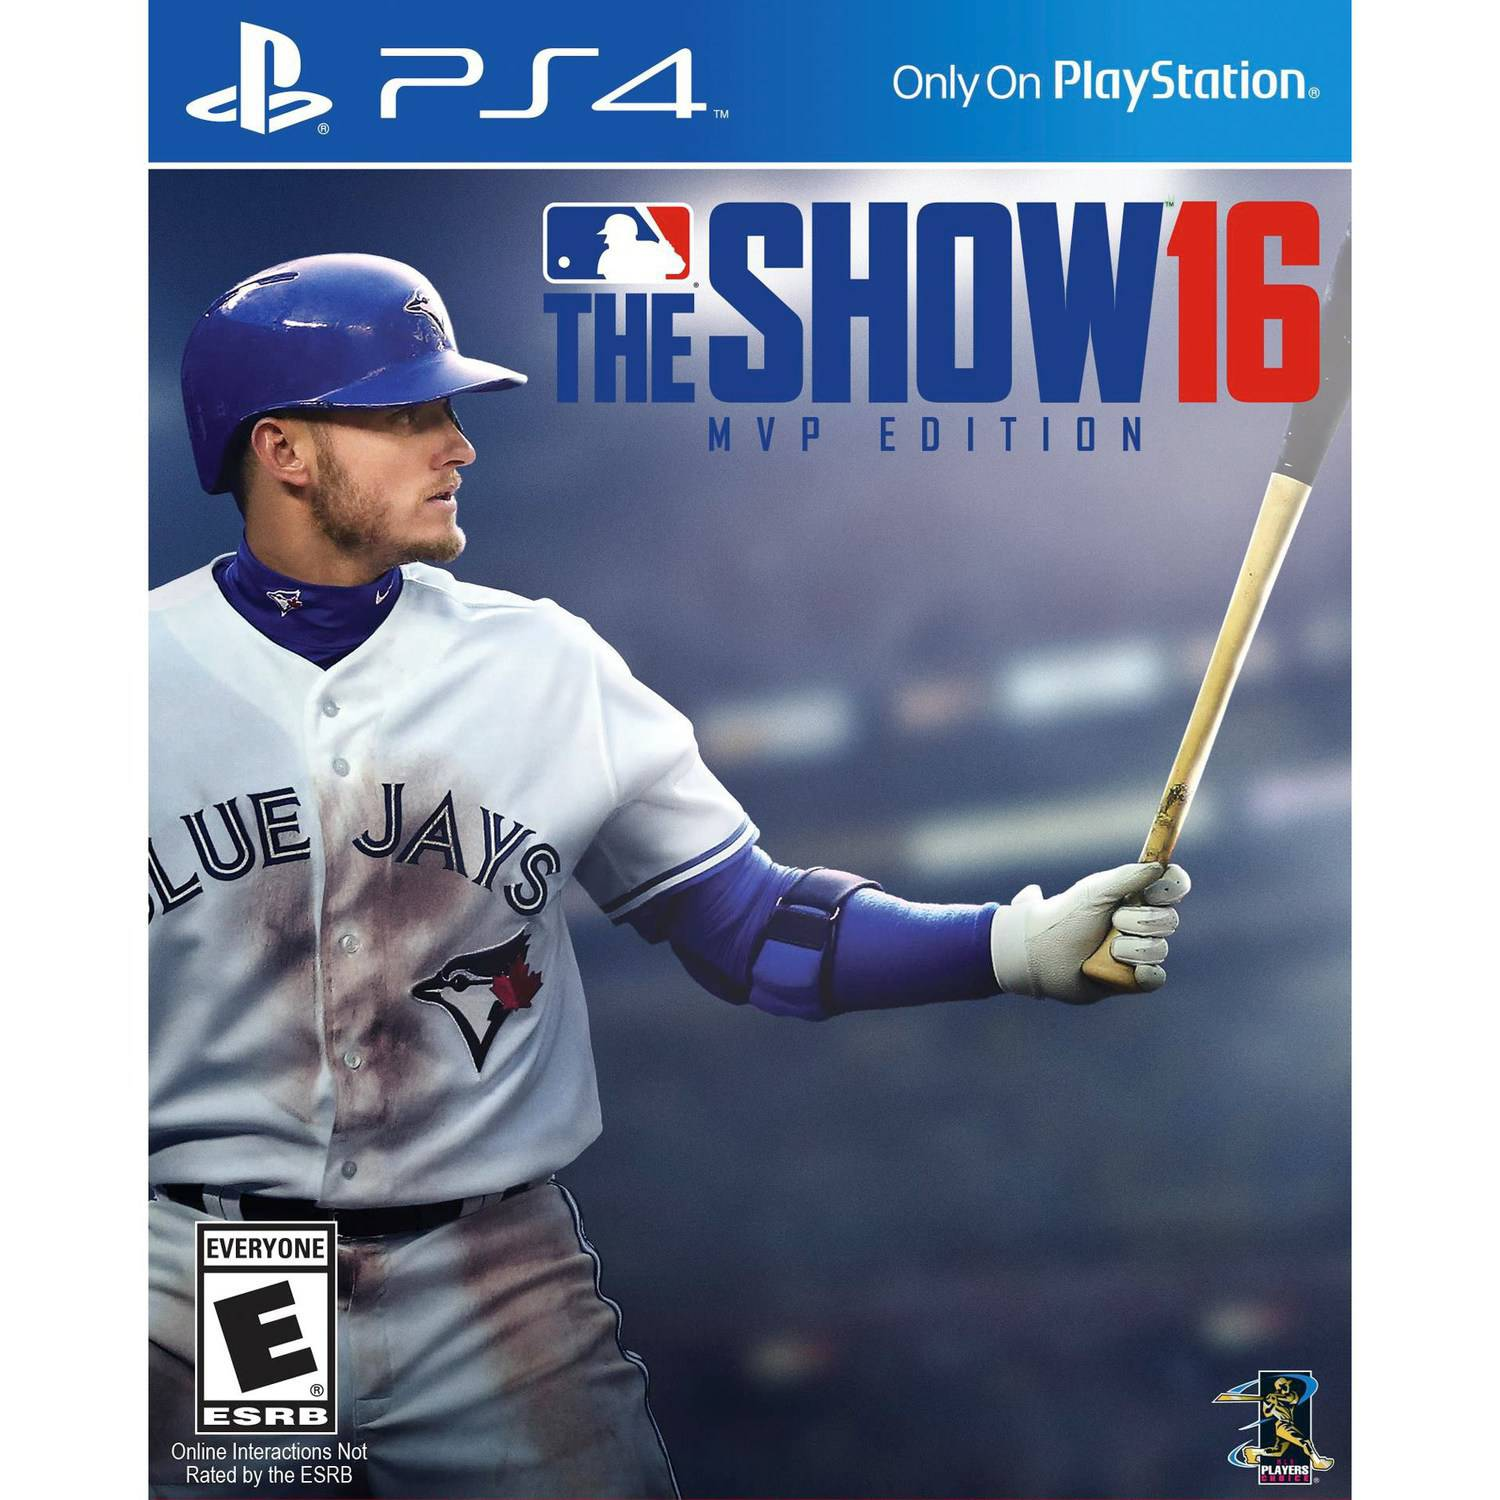 MLB The Show '16 MVP Edition (PS4)